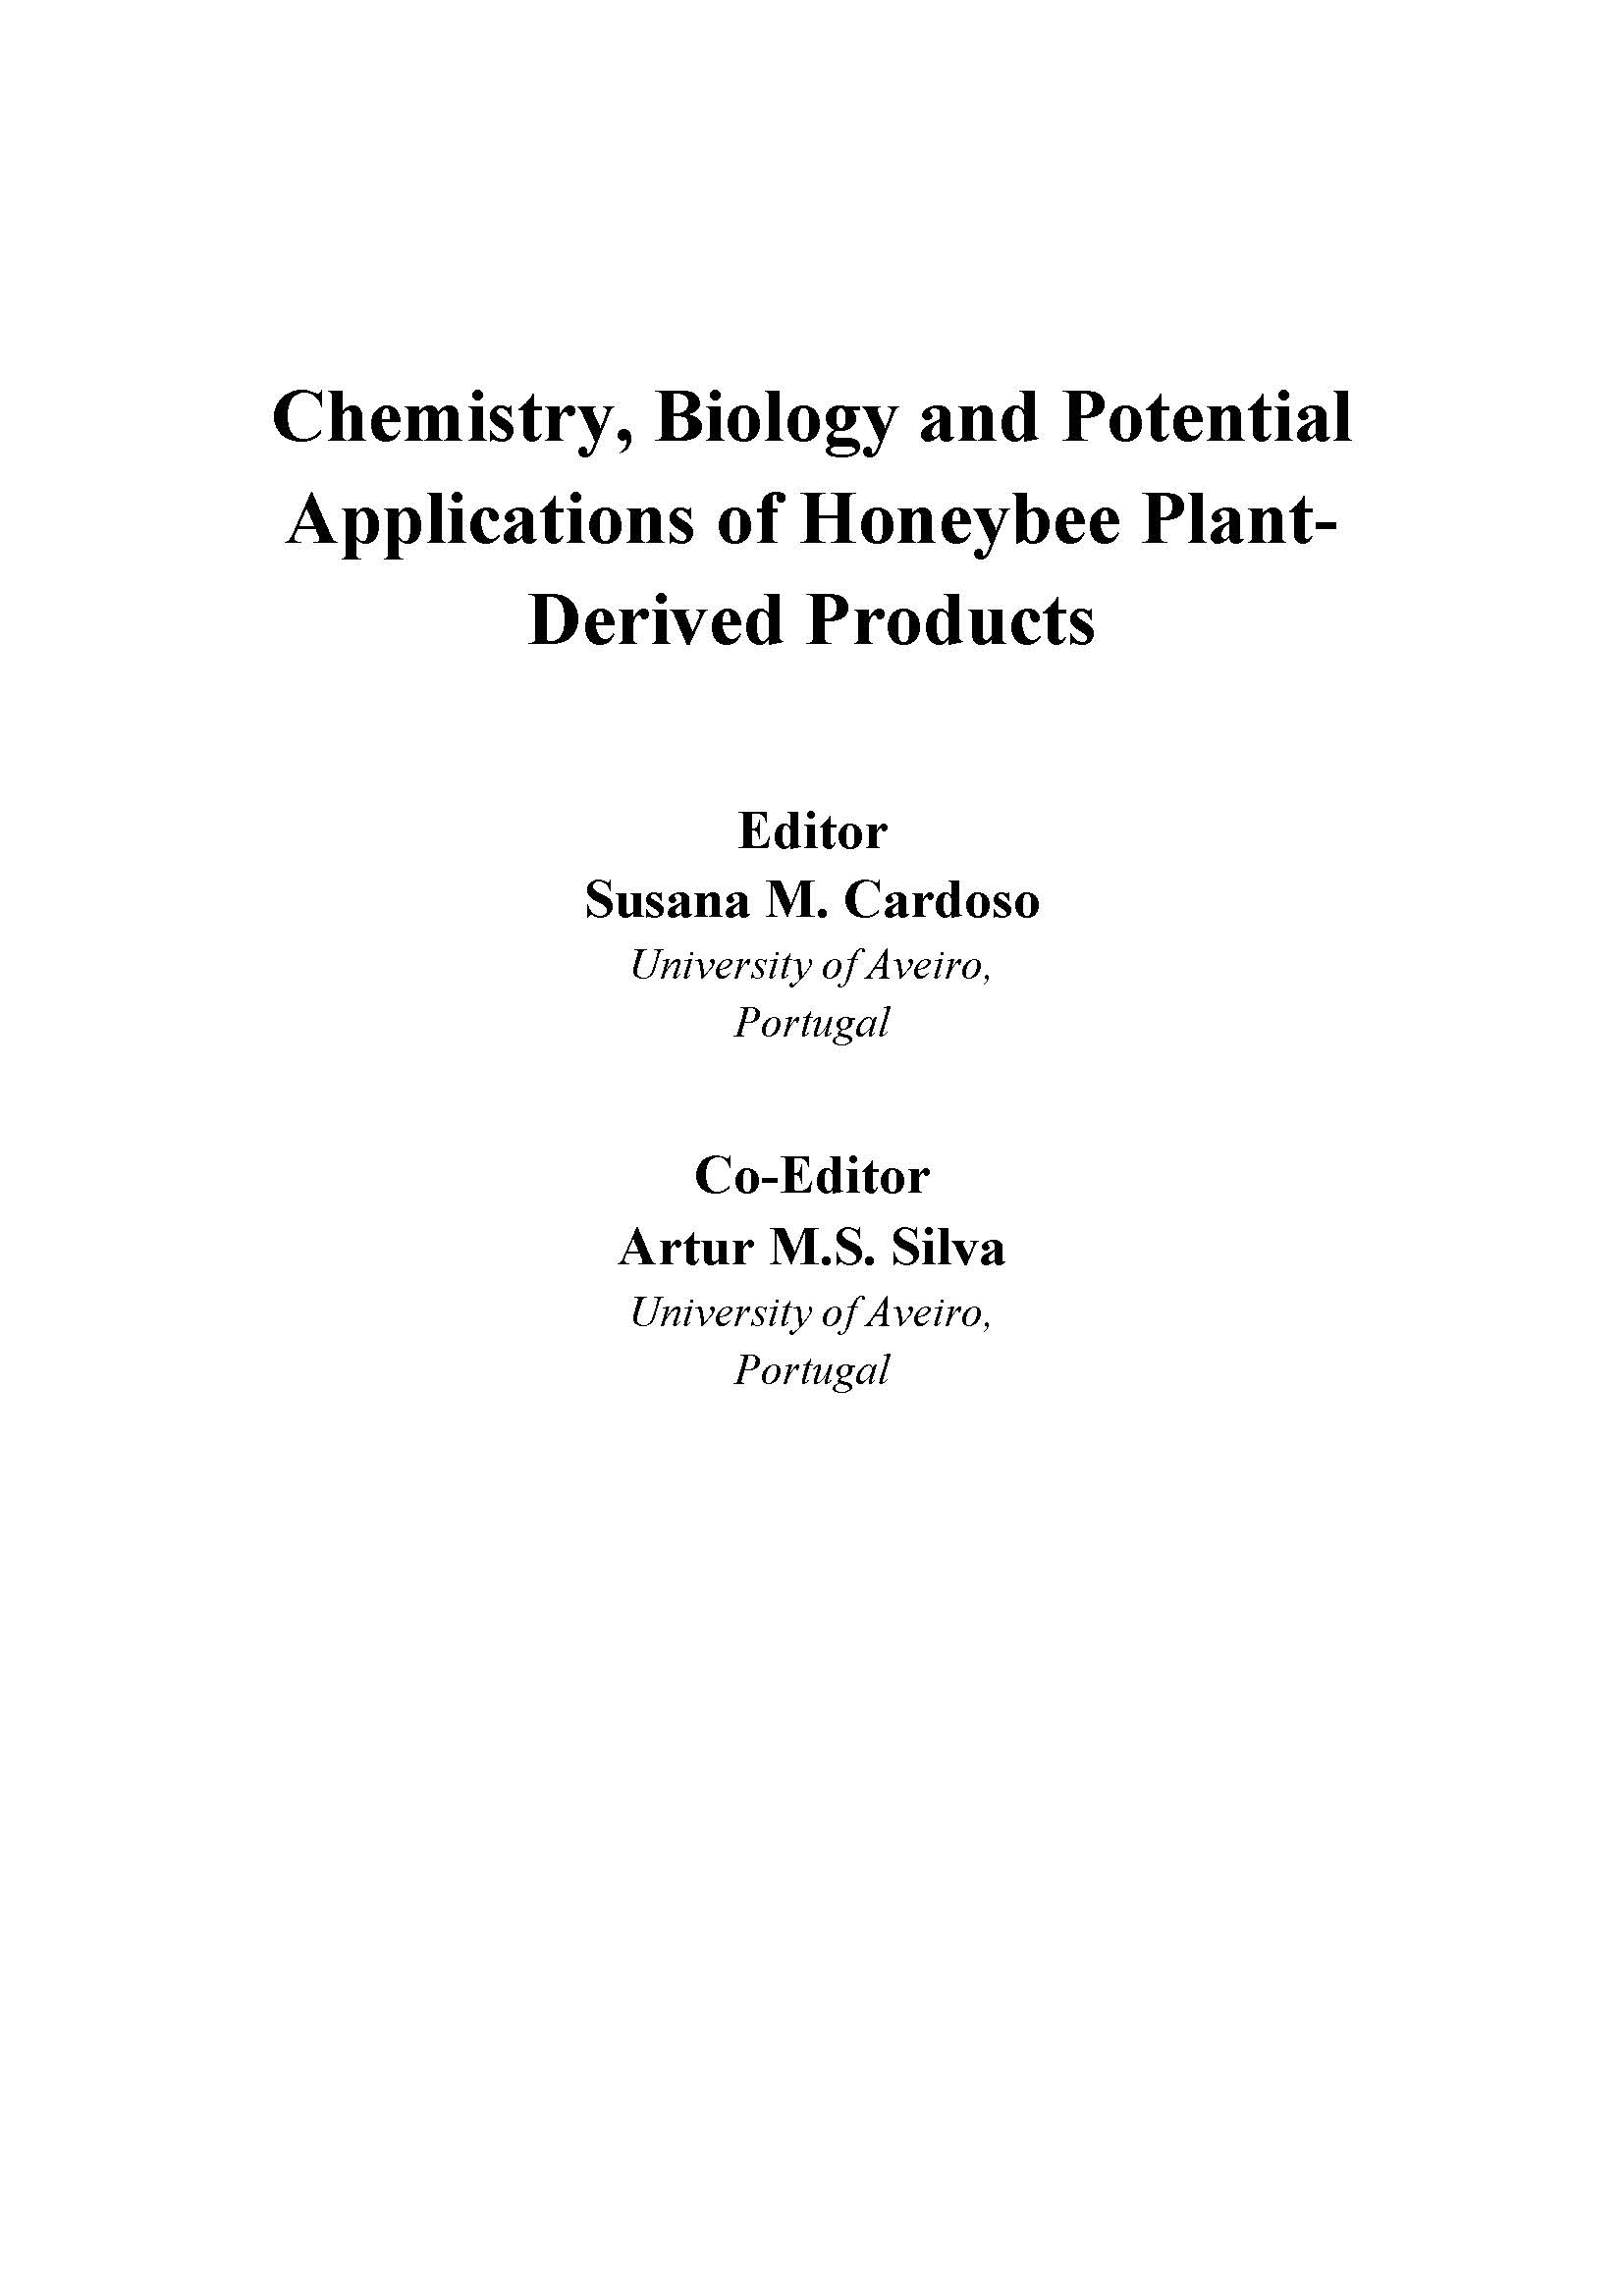 Chemistry biology and potential applications of honeybee plant chemistry biology and potential applications of honeybee plant derived products related journals fandeluxe Gallery